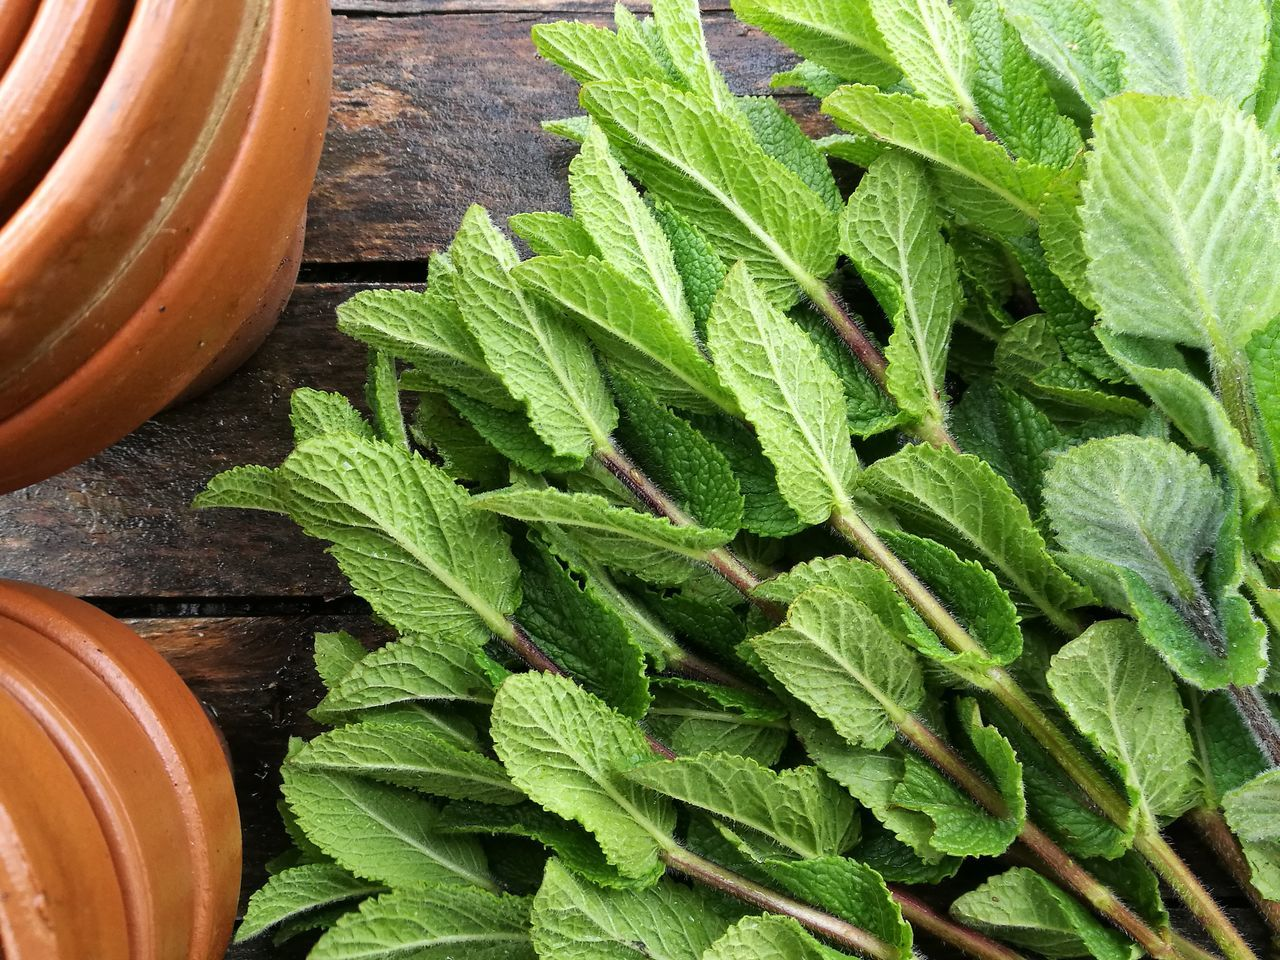 Mint Leaf - Culinary Mint Mint Leaves Mint Green Mints Leaf Green Color Plant Growth Close-up Freshness Nature Wallpaper Full Frame Fullframe Moroccan Mint Spices Spices Food Spices Collection EyeEmNewHere